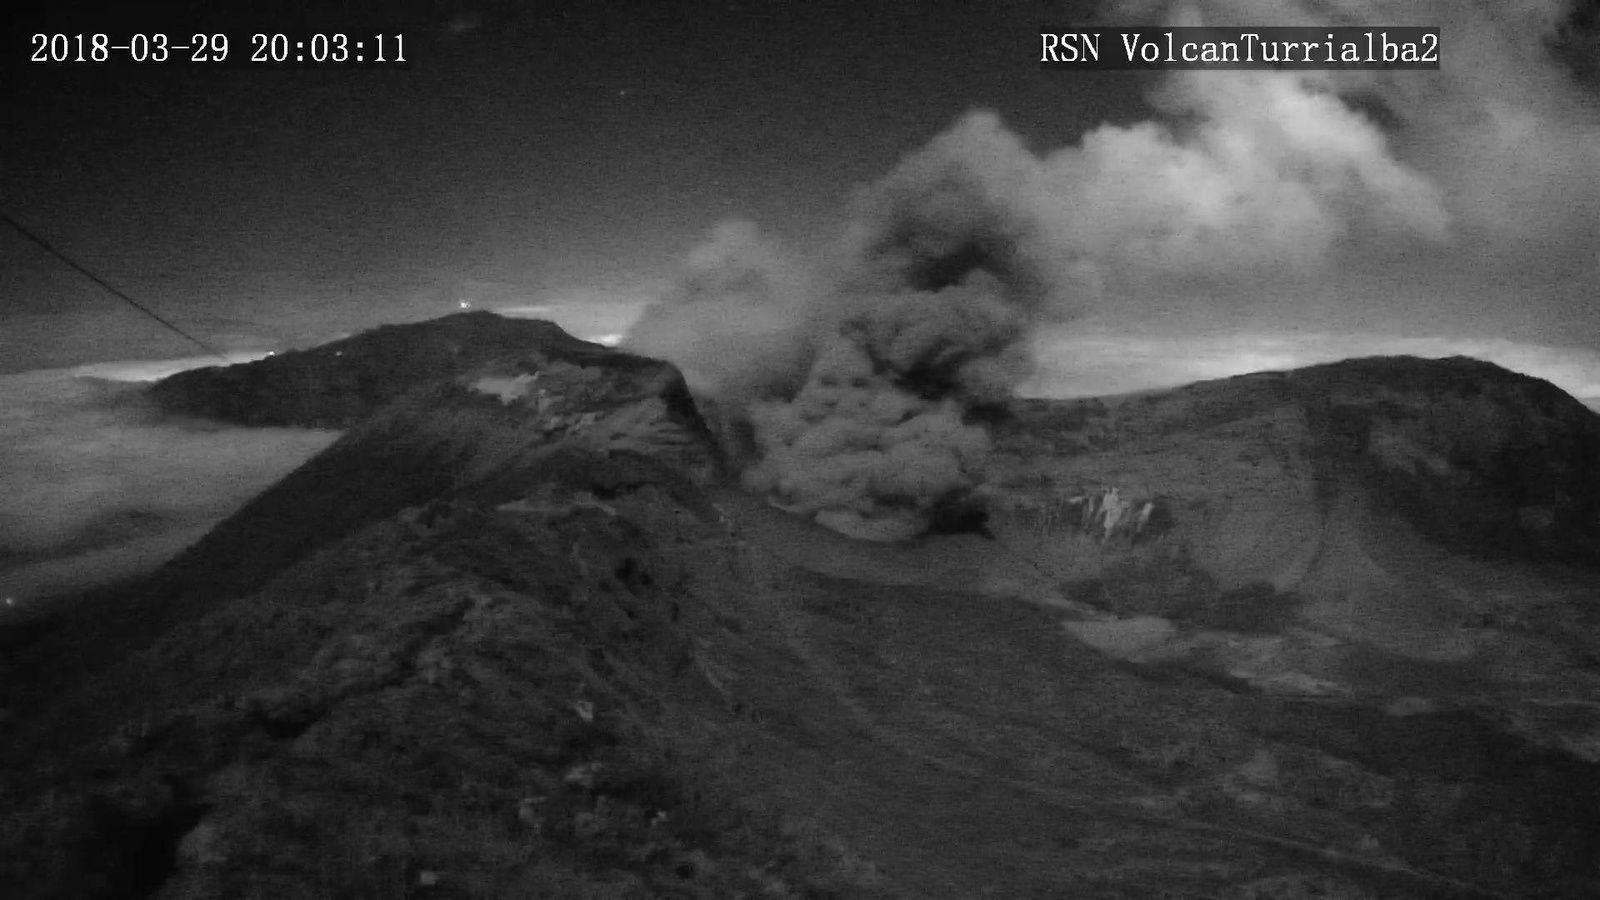 Turrialba - 29.03.2018 / 20h03 - RSN webcam